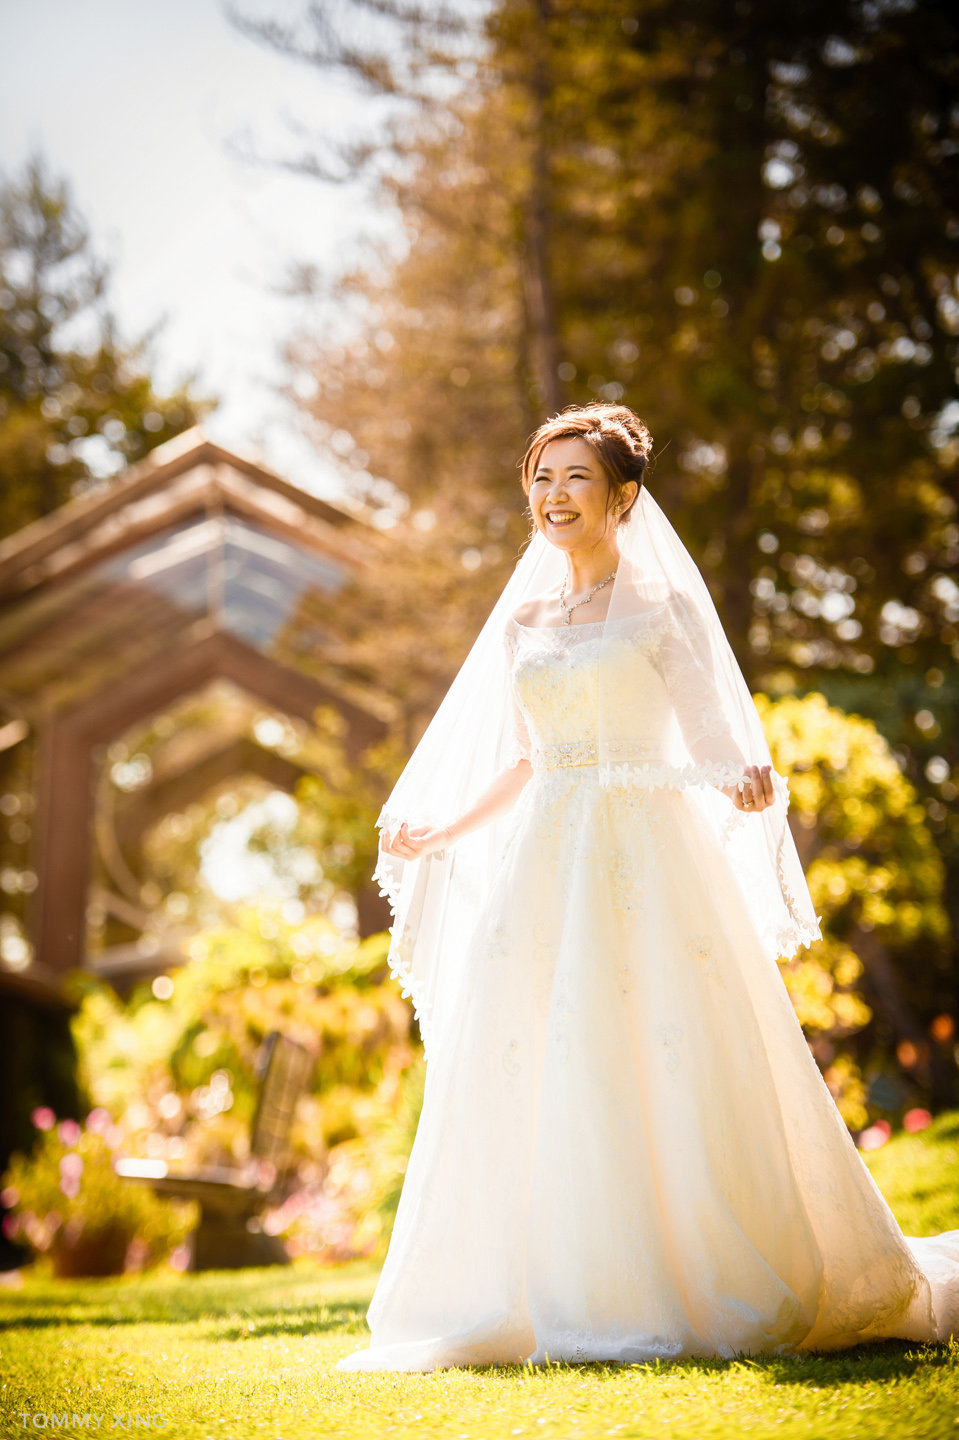 Los Angeles Wedding Photographer 洛杉矶婚礼婚纱摄影师 Tommy Xing-163.JPG